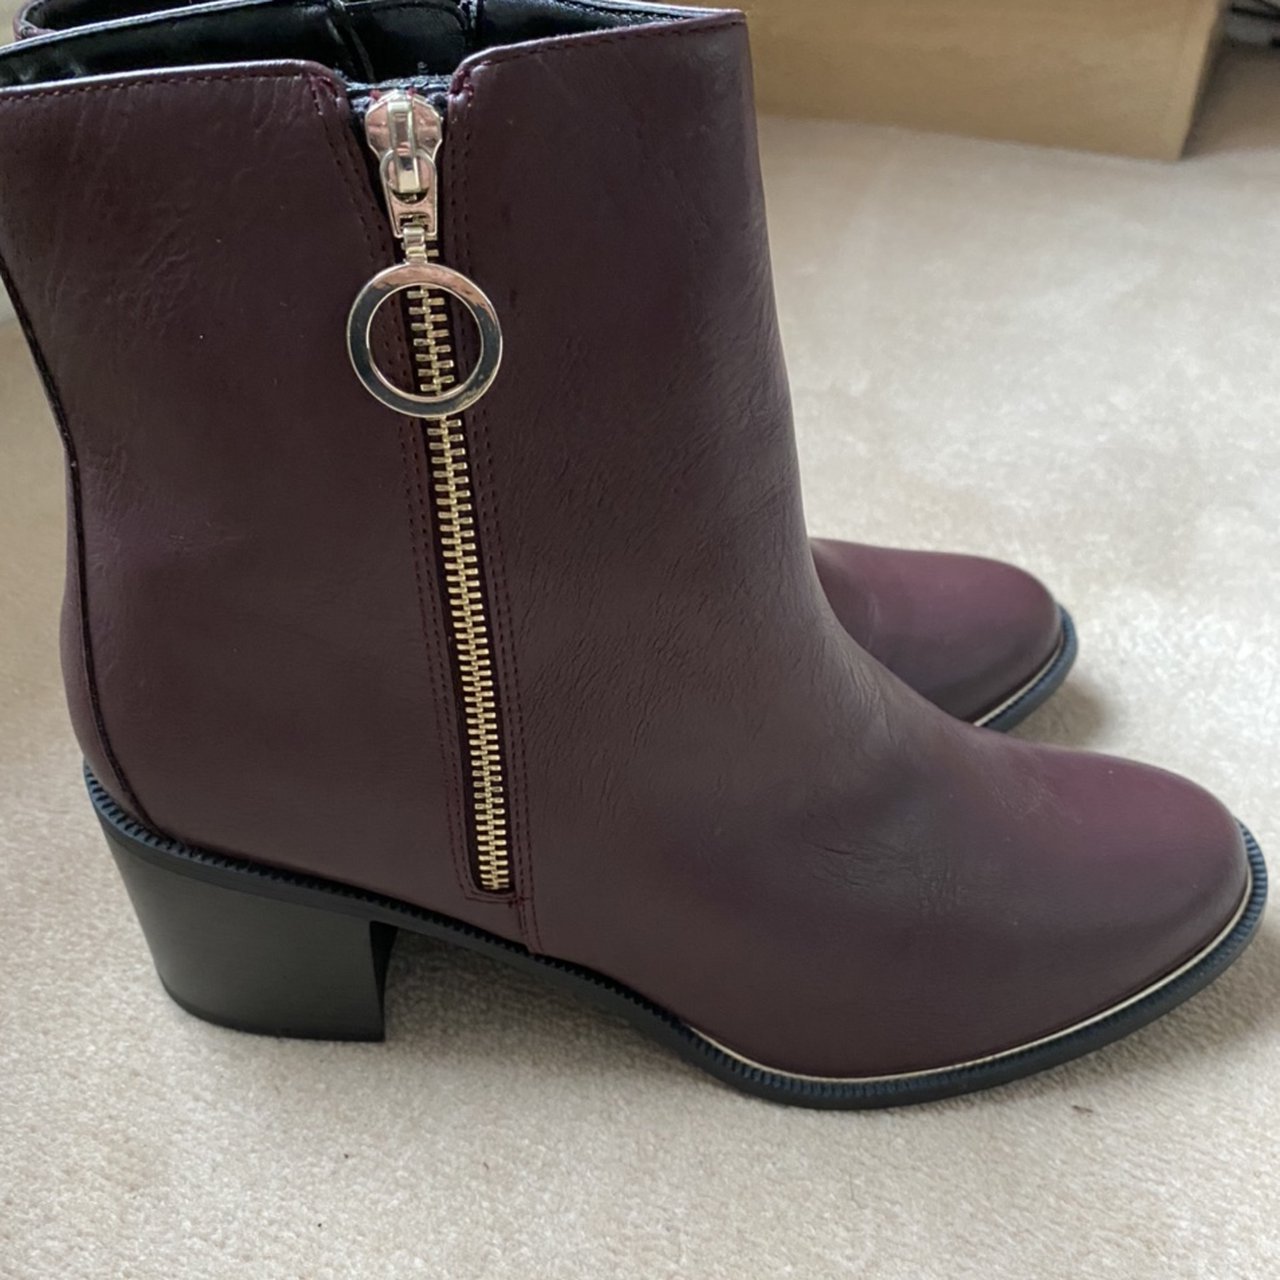 size 9 wide fit boots. Unusual colour